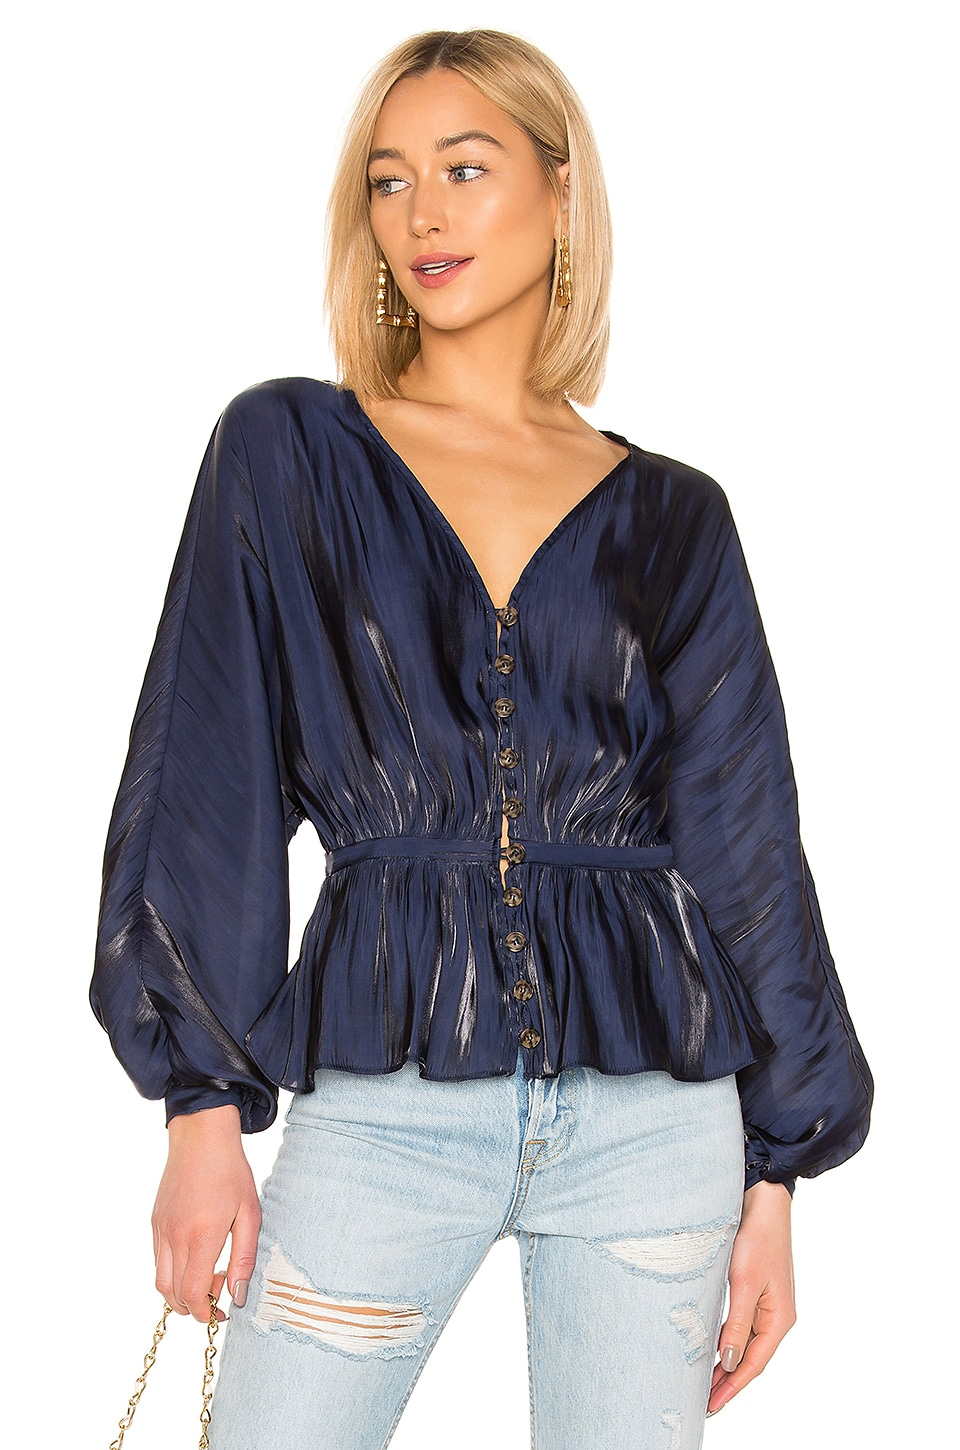 L'Academie The Diane Blouse in Eclipse